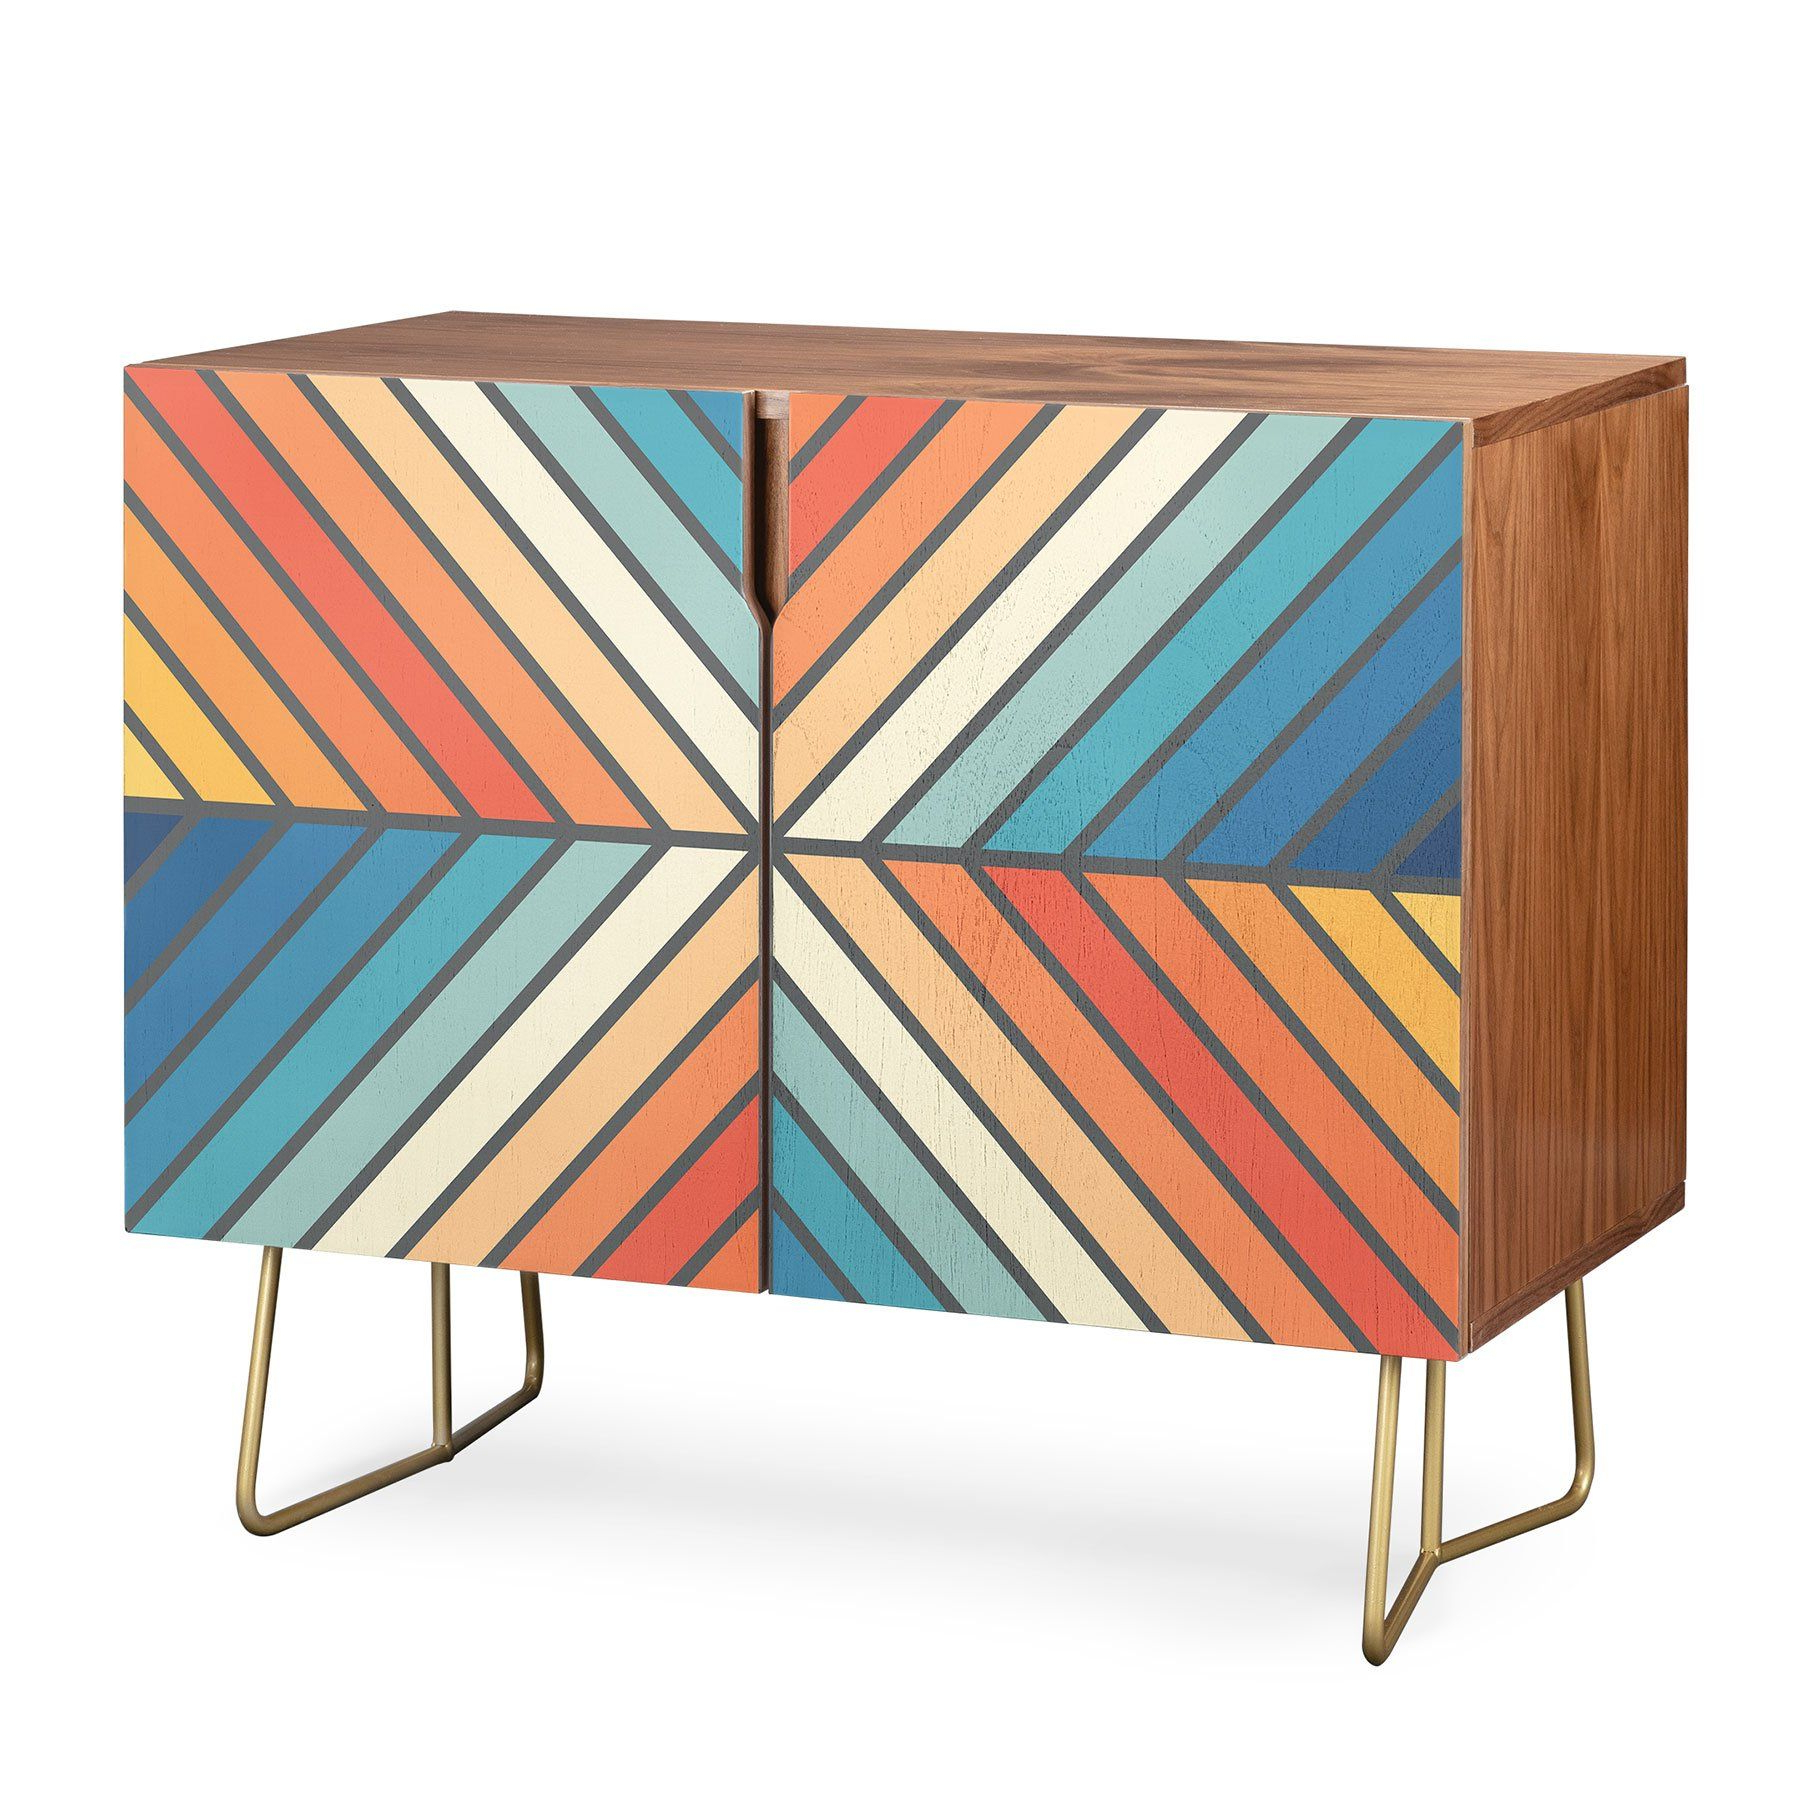 Fimbis Celebration 1 Credenza | Home Products & Decoration Throughout Blush Deco Credenzas (View 14 of 20)